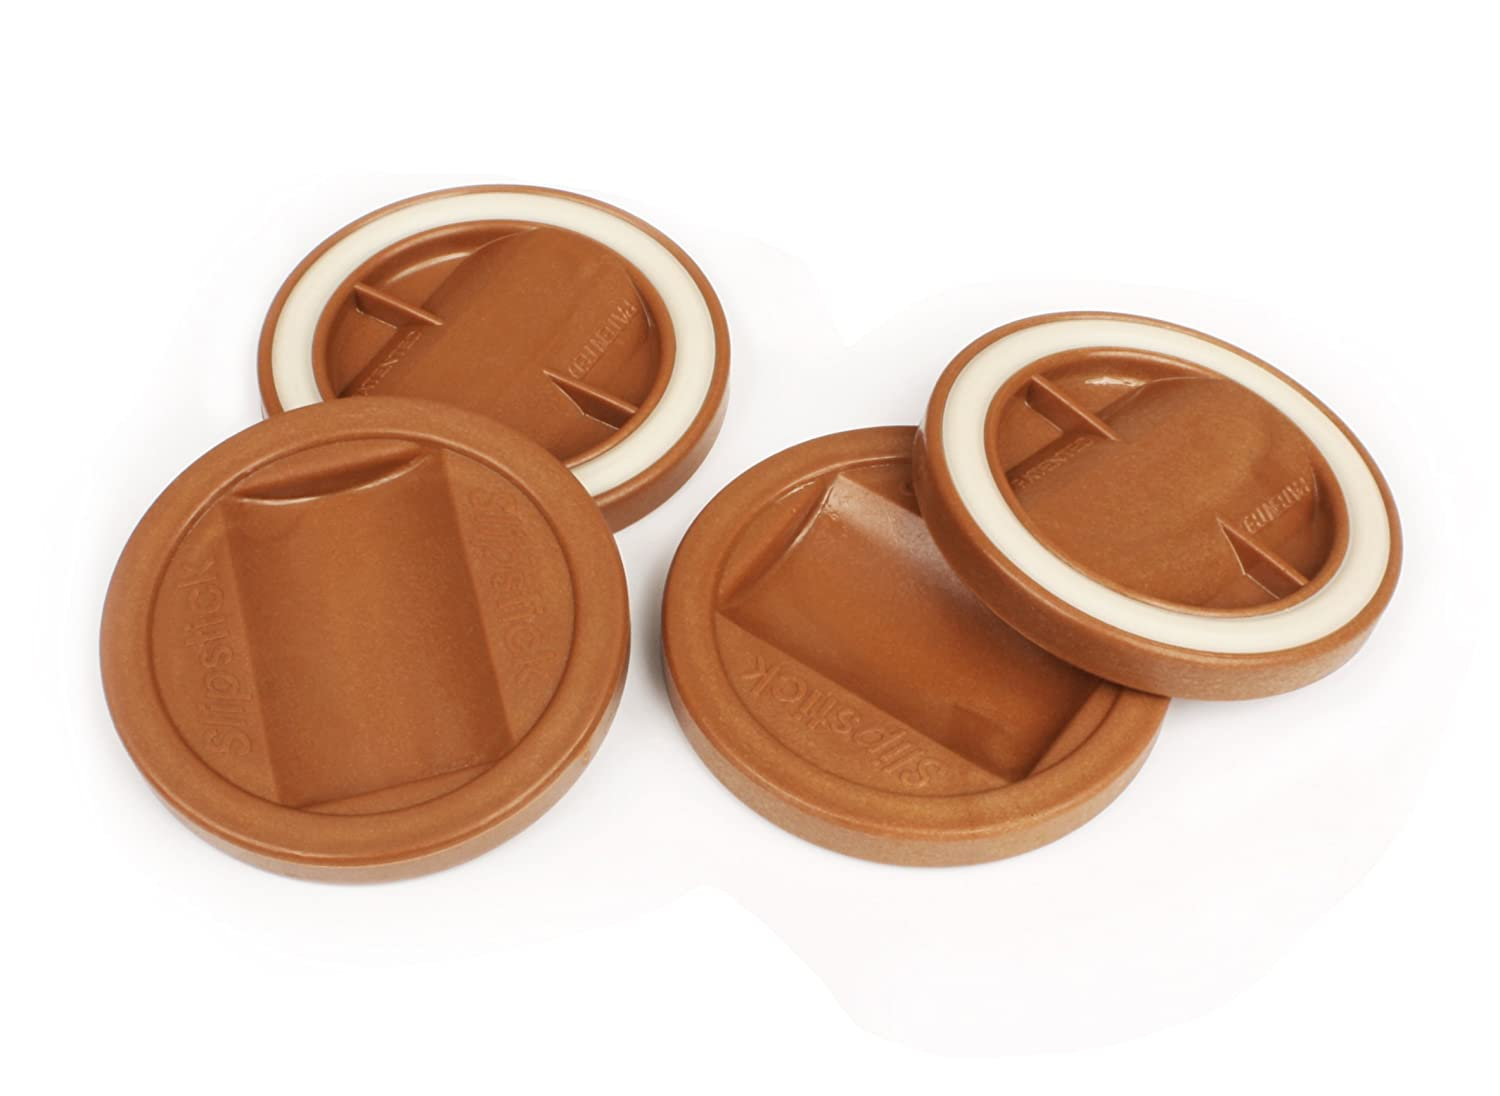 Slipstick CB840 3 1/4 Inch Bed Roller / Furniture Wheel Gripper Caster Cups  (Set Of 4) Caramel Color   Furniture Cups   Amazon.com